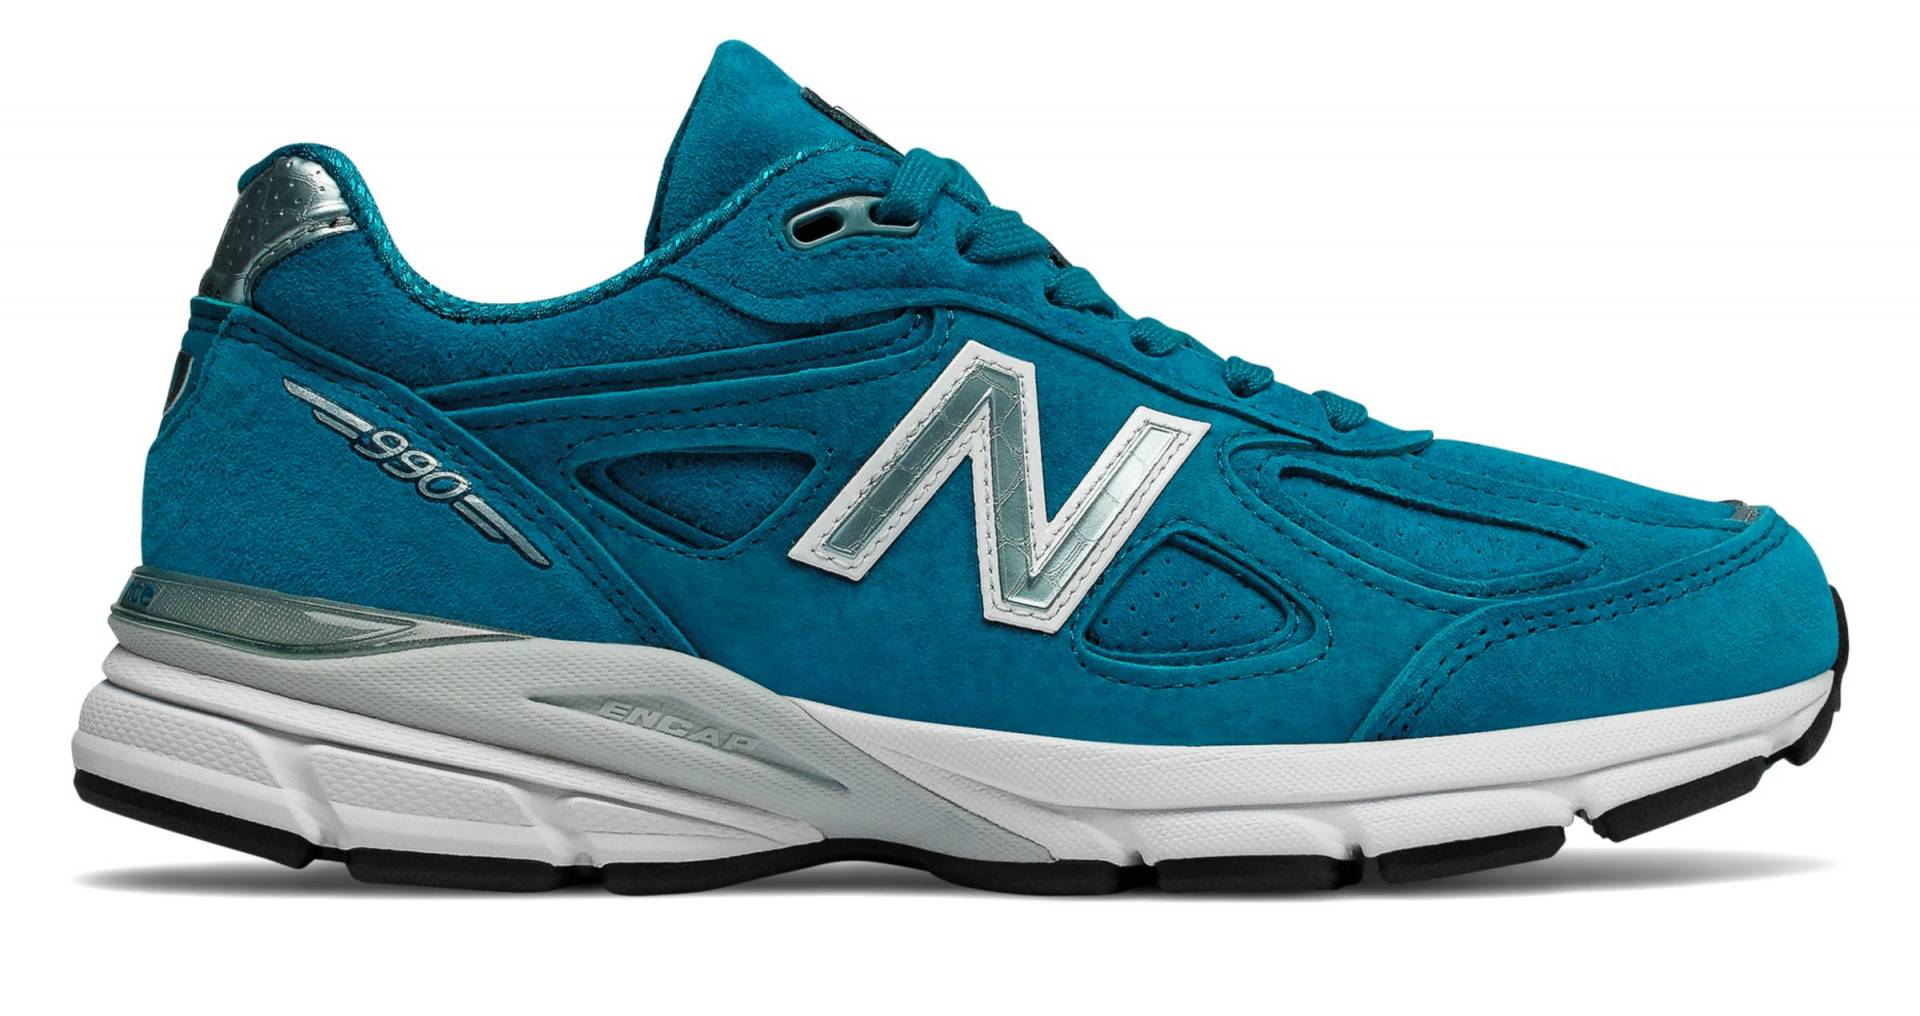 990v4 Made in US de Lake Blue with Silver